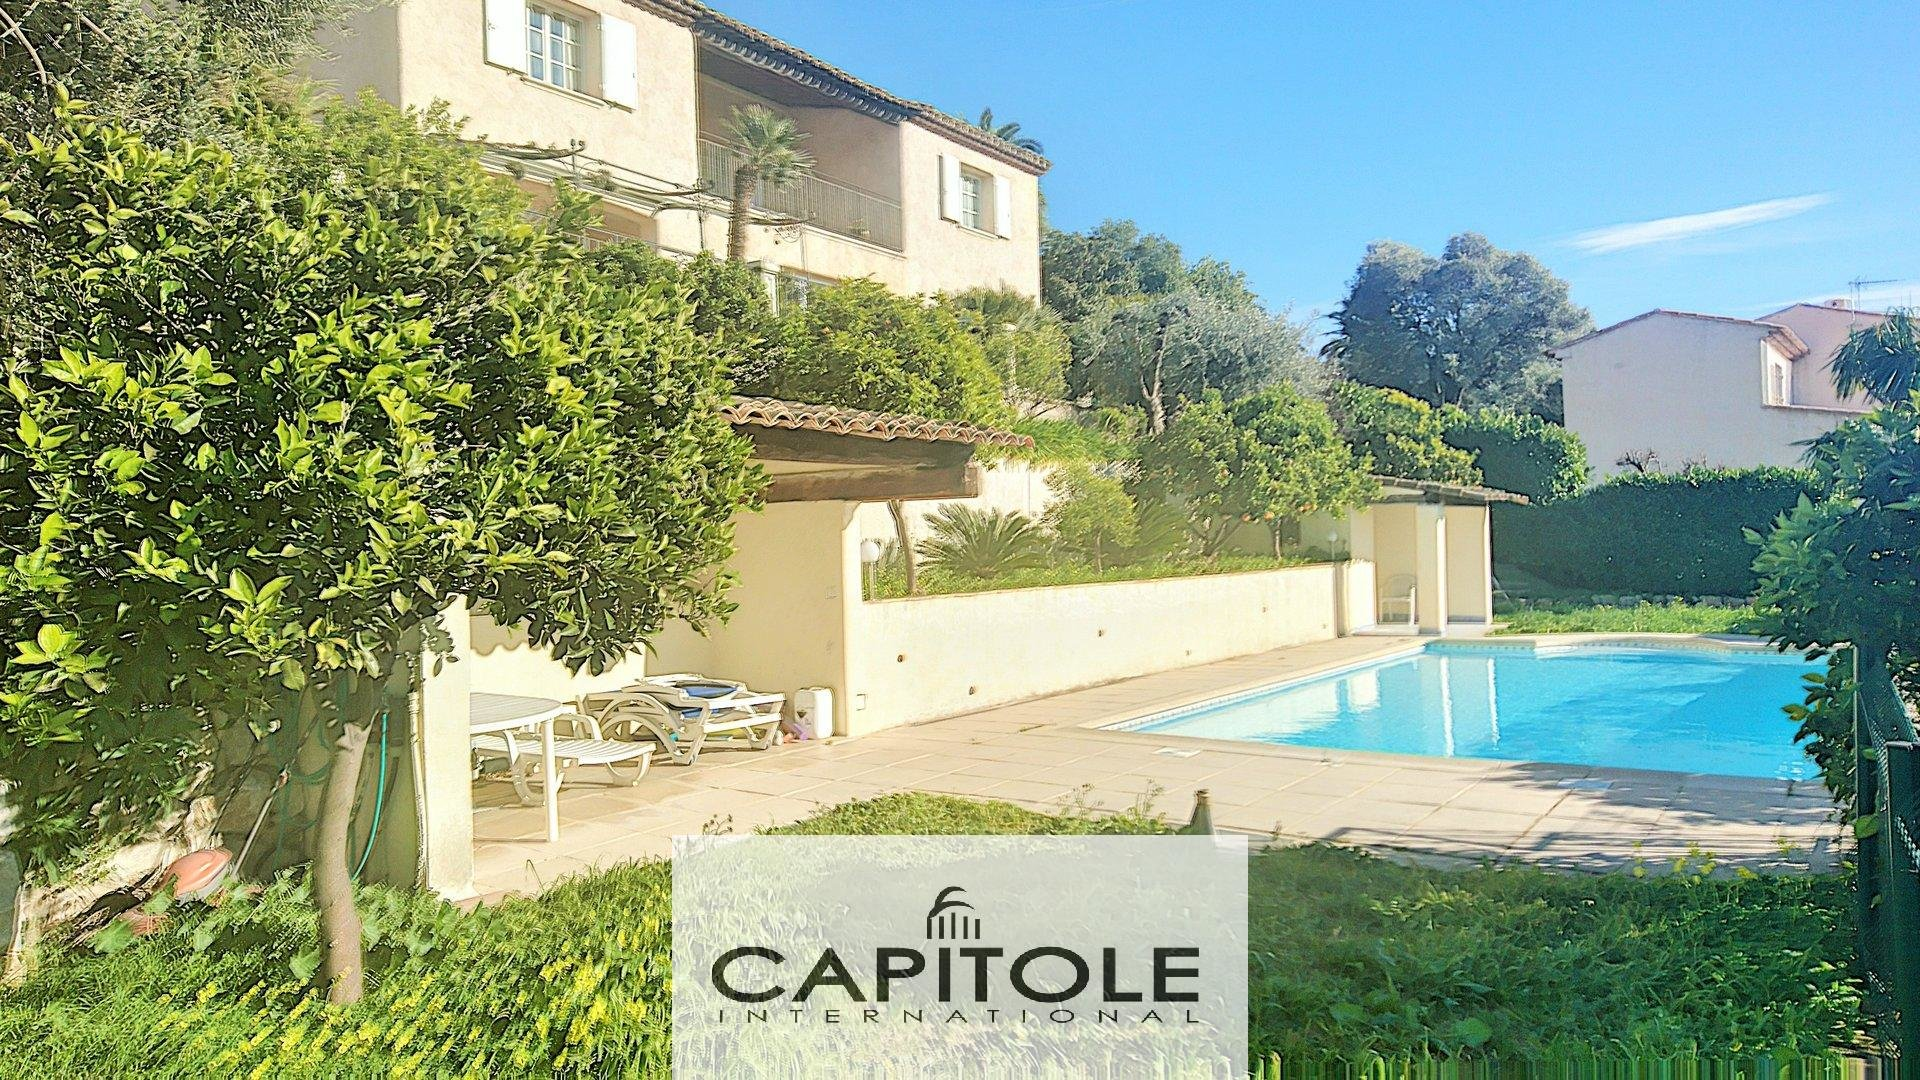 For sale, Antibes, beautiful dominant villa 200 m², glimpse of the sea, swimming pool